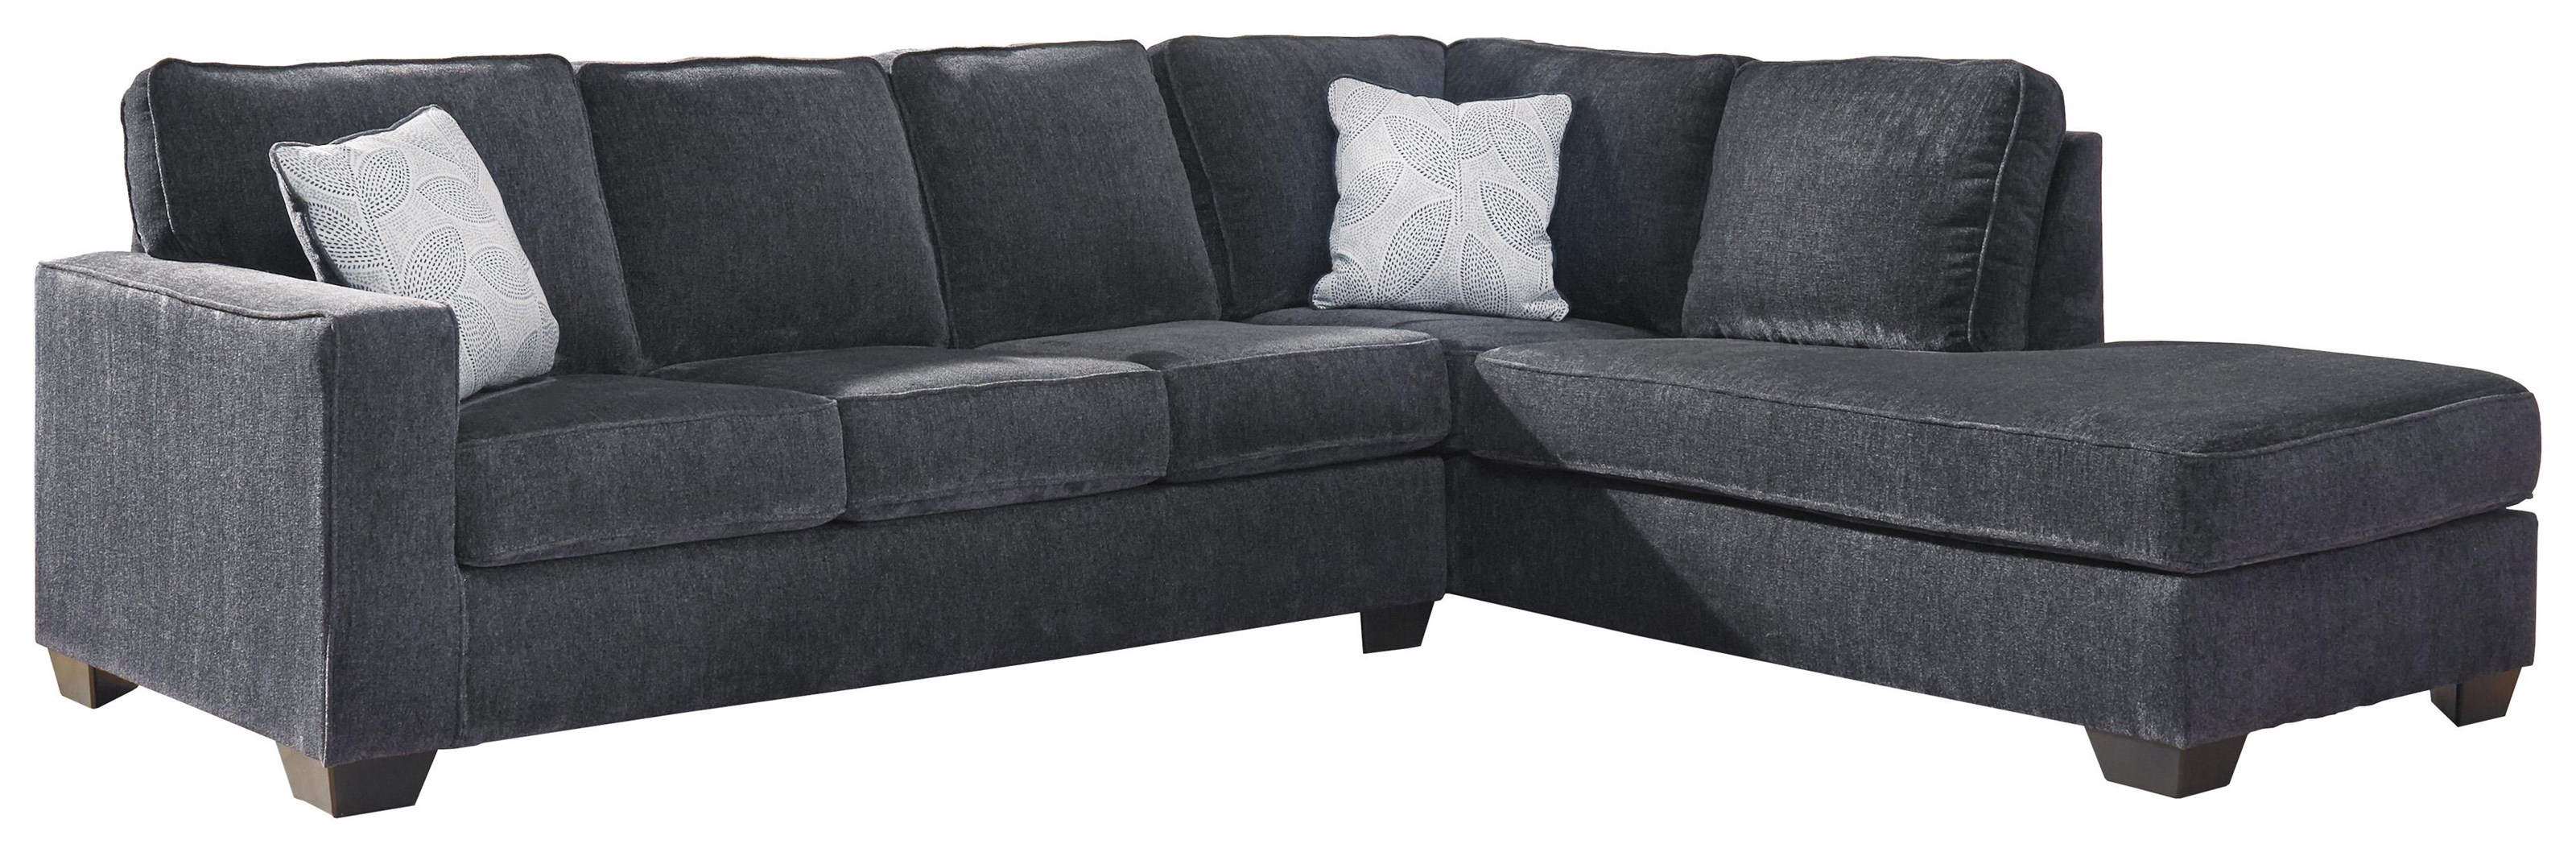 2 PC Sectional and Chair Set